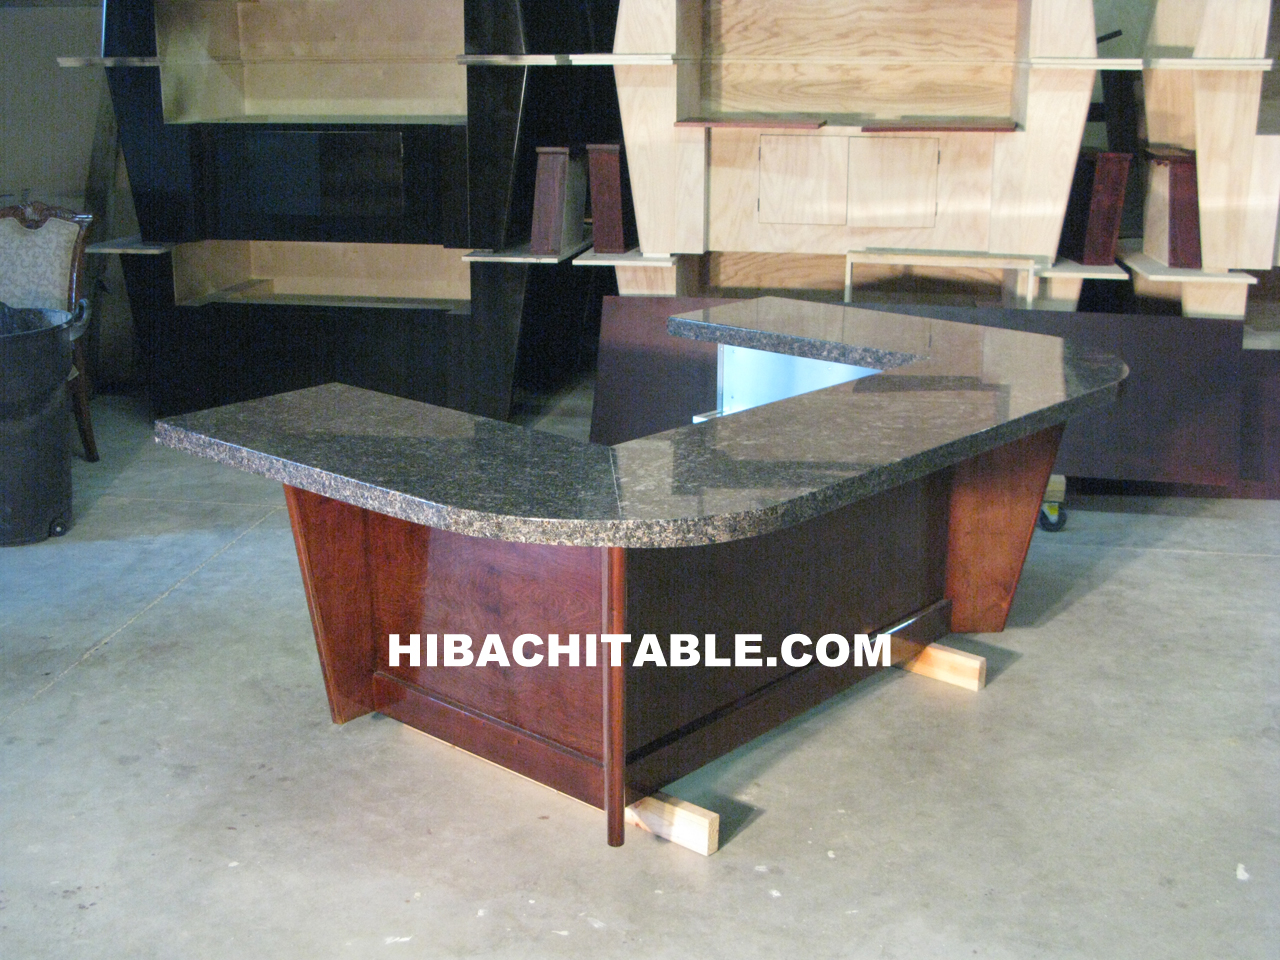 Hibachi Table Hibachi Table Teppanyaki Table Teppan Table - Teppan table